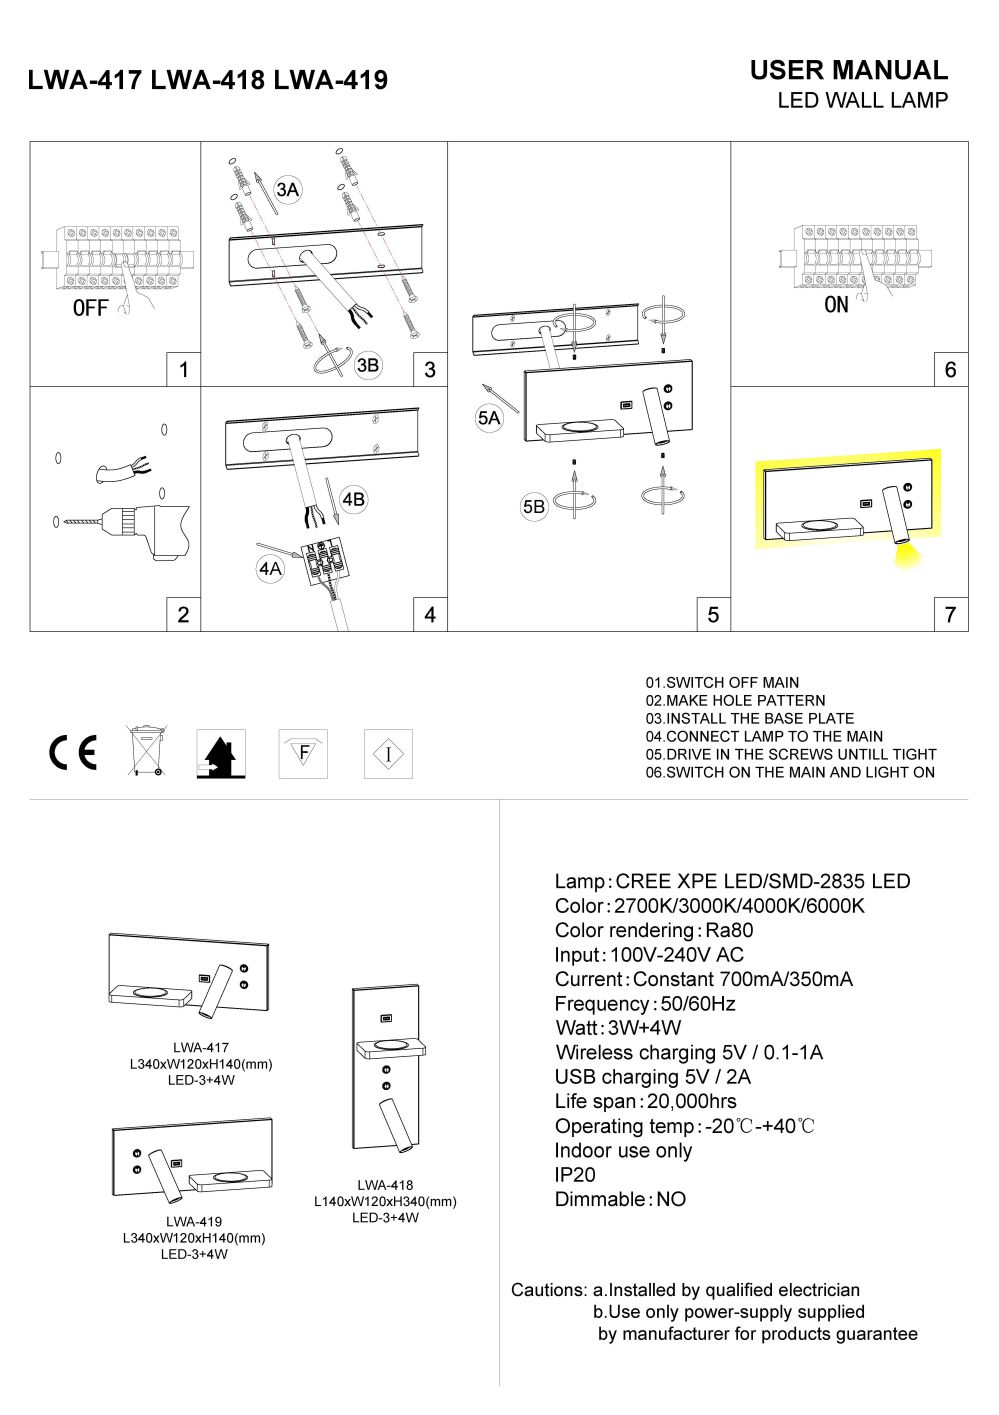 LWA-418 LED reading light installation guide